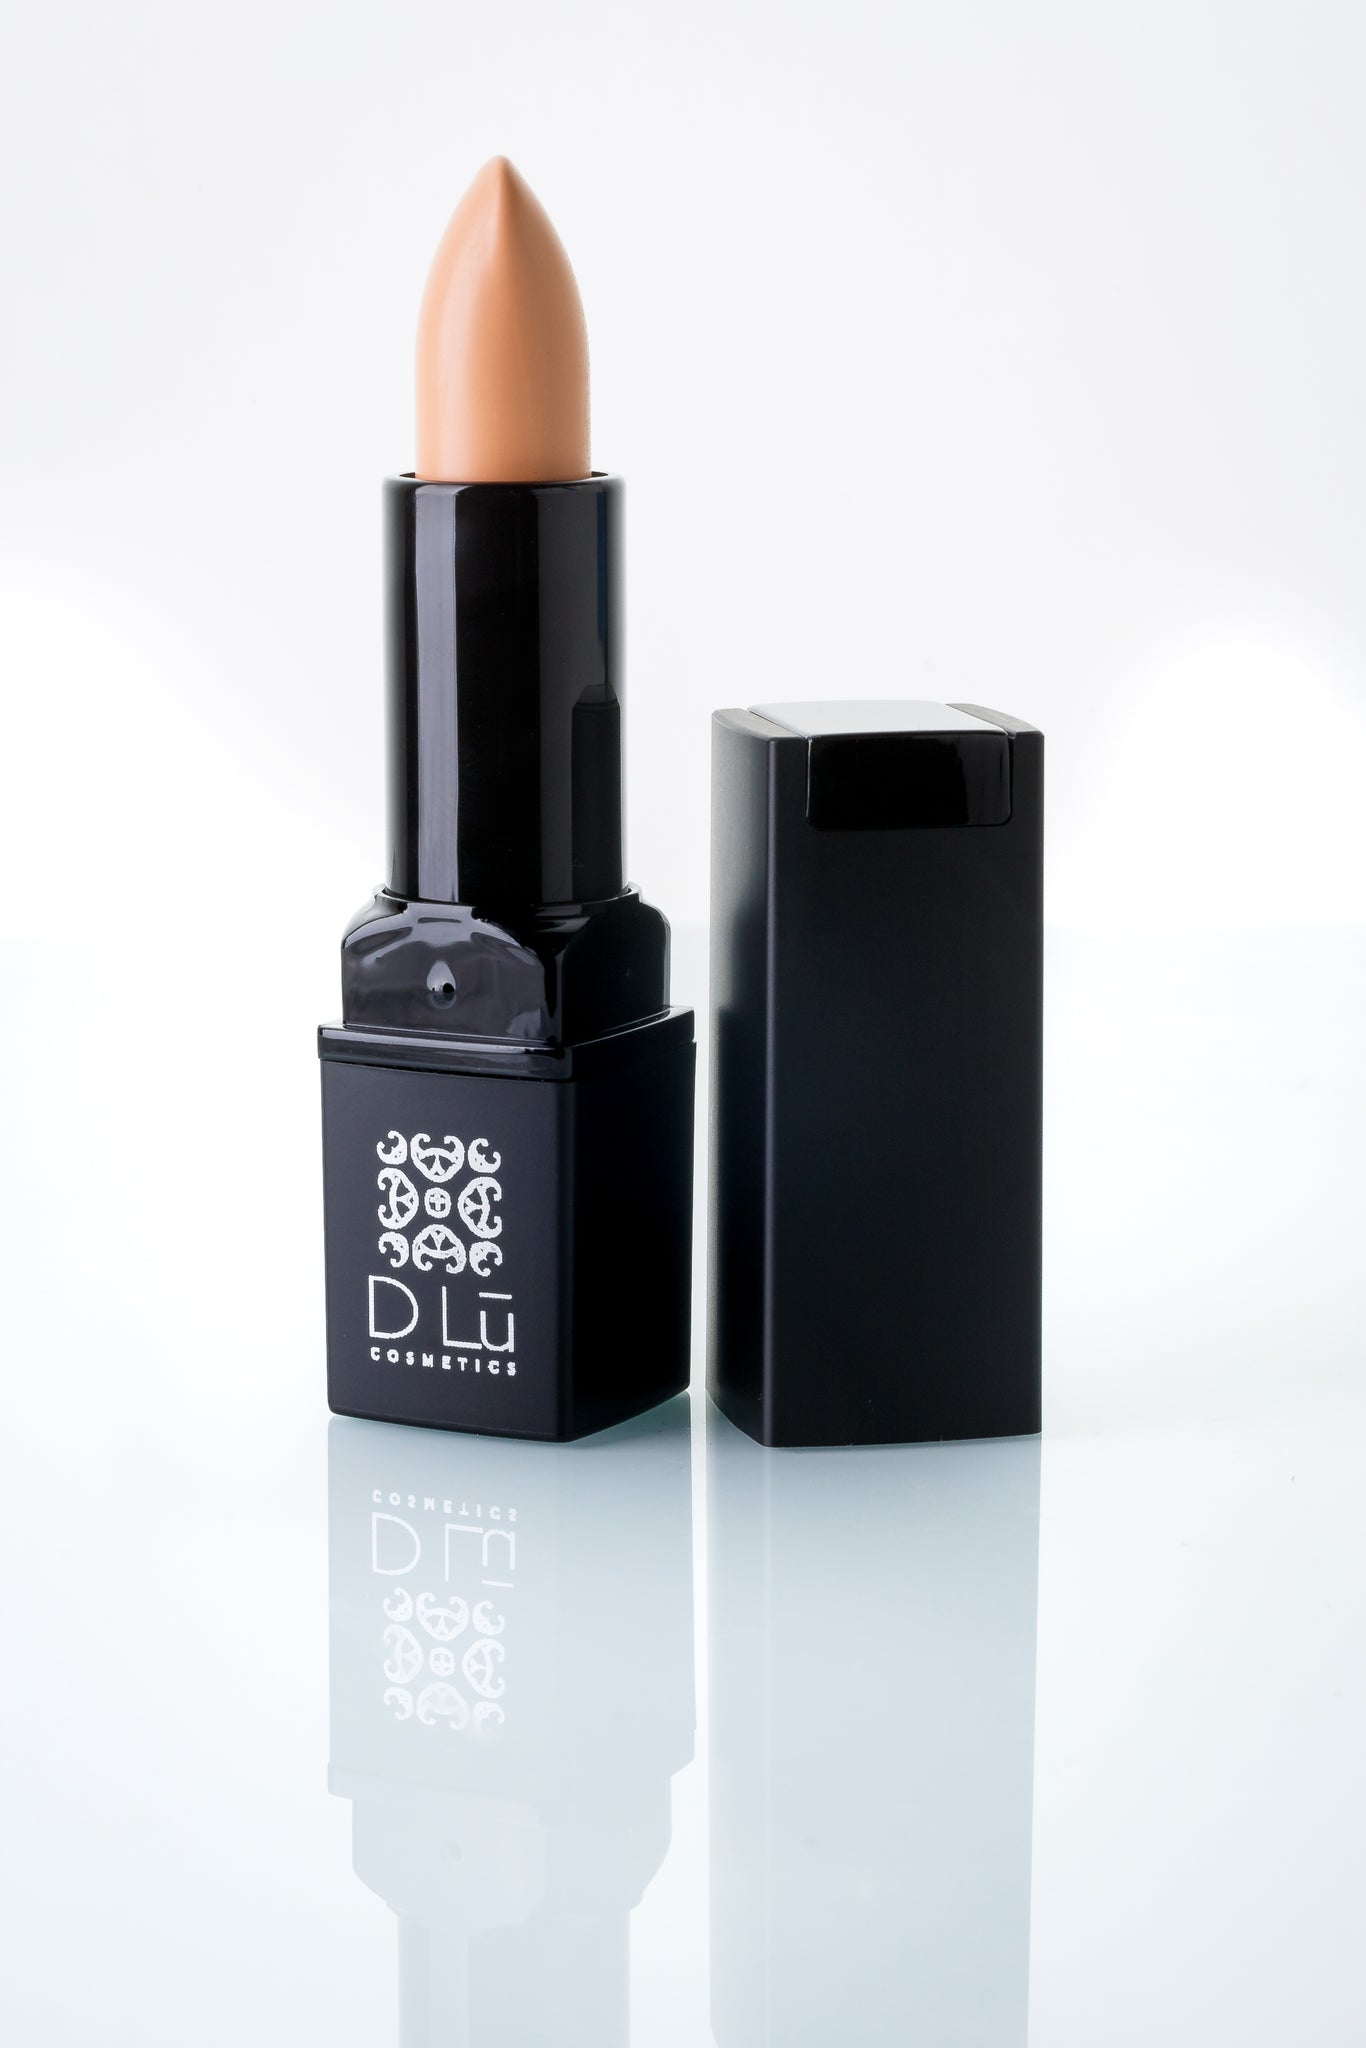 DLu Premier Concealer Stick Medium Porcelain